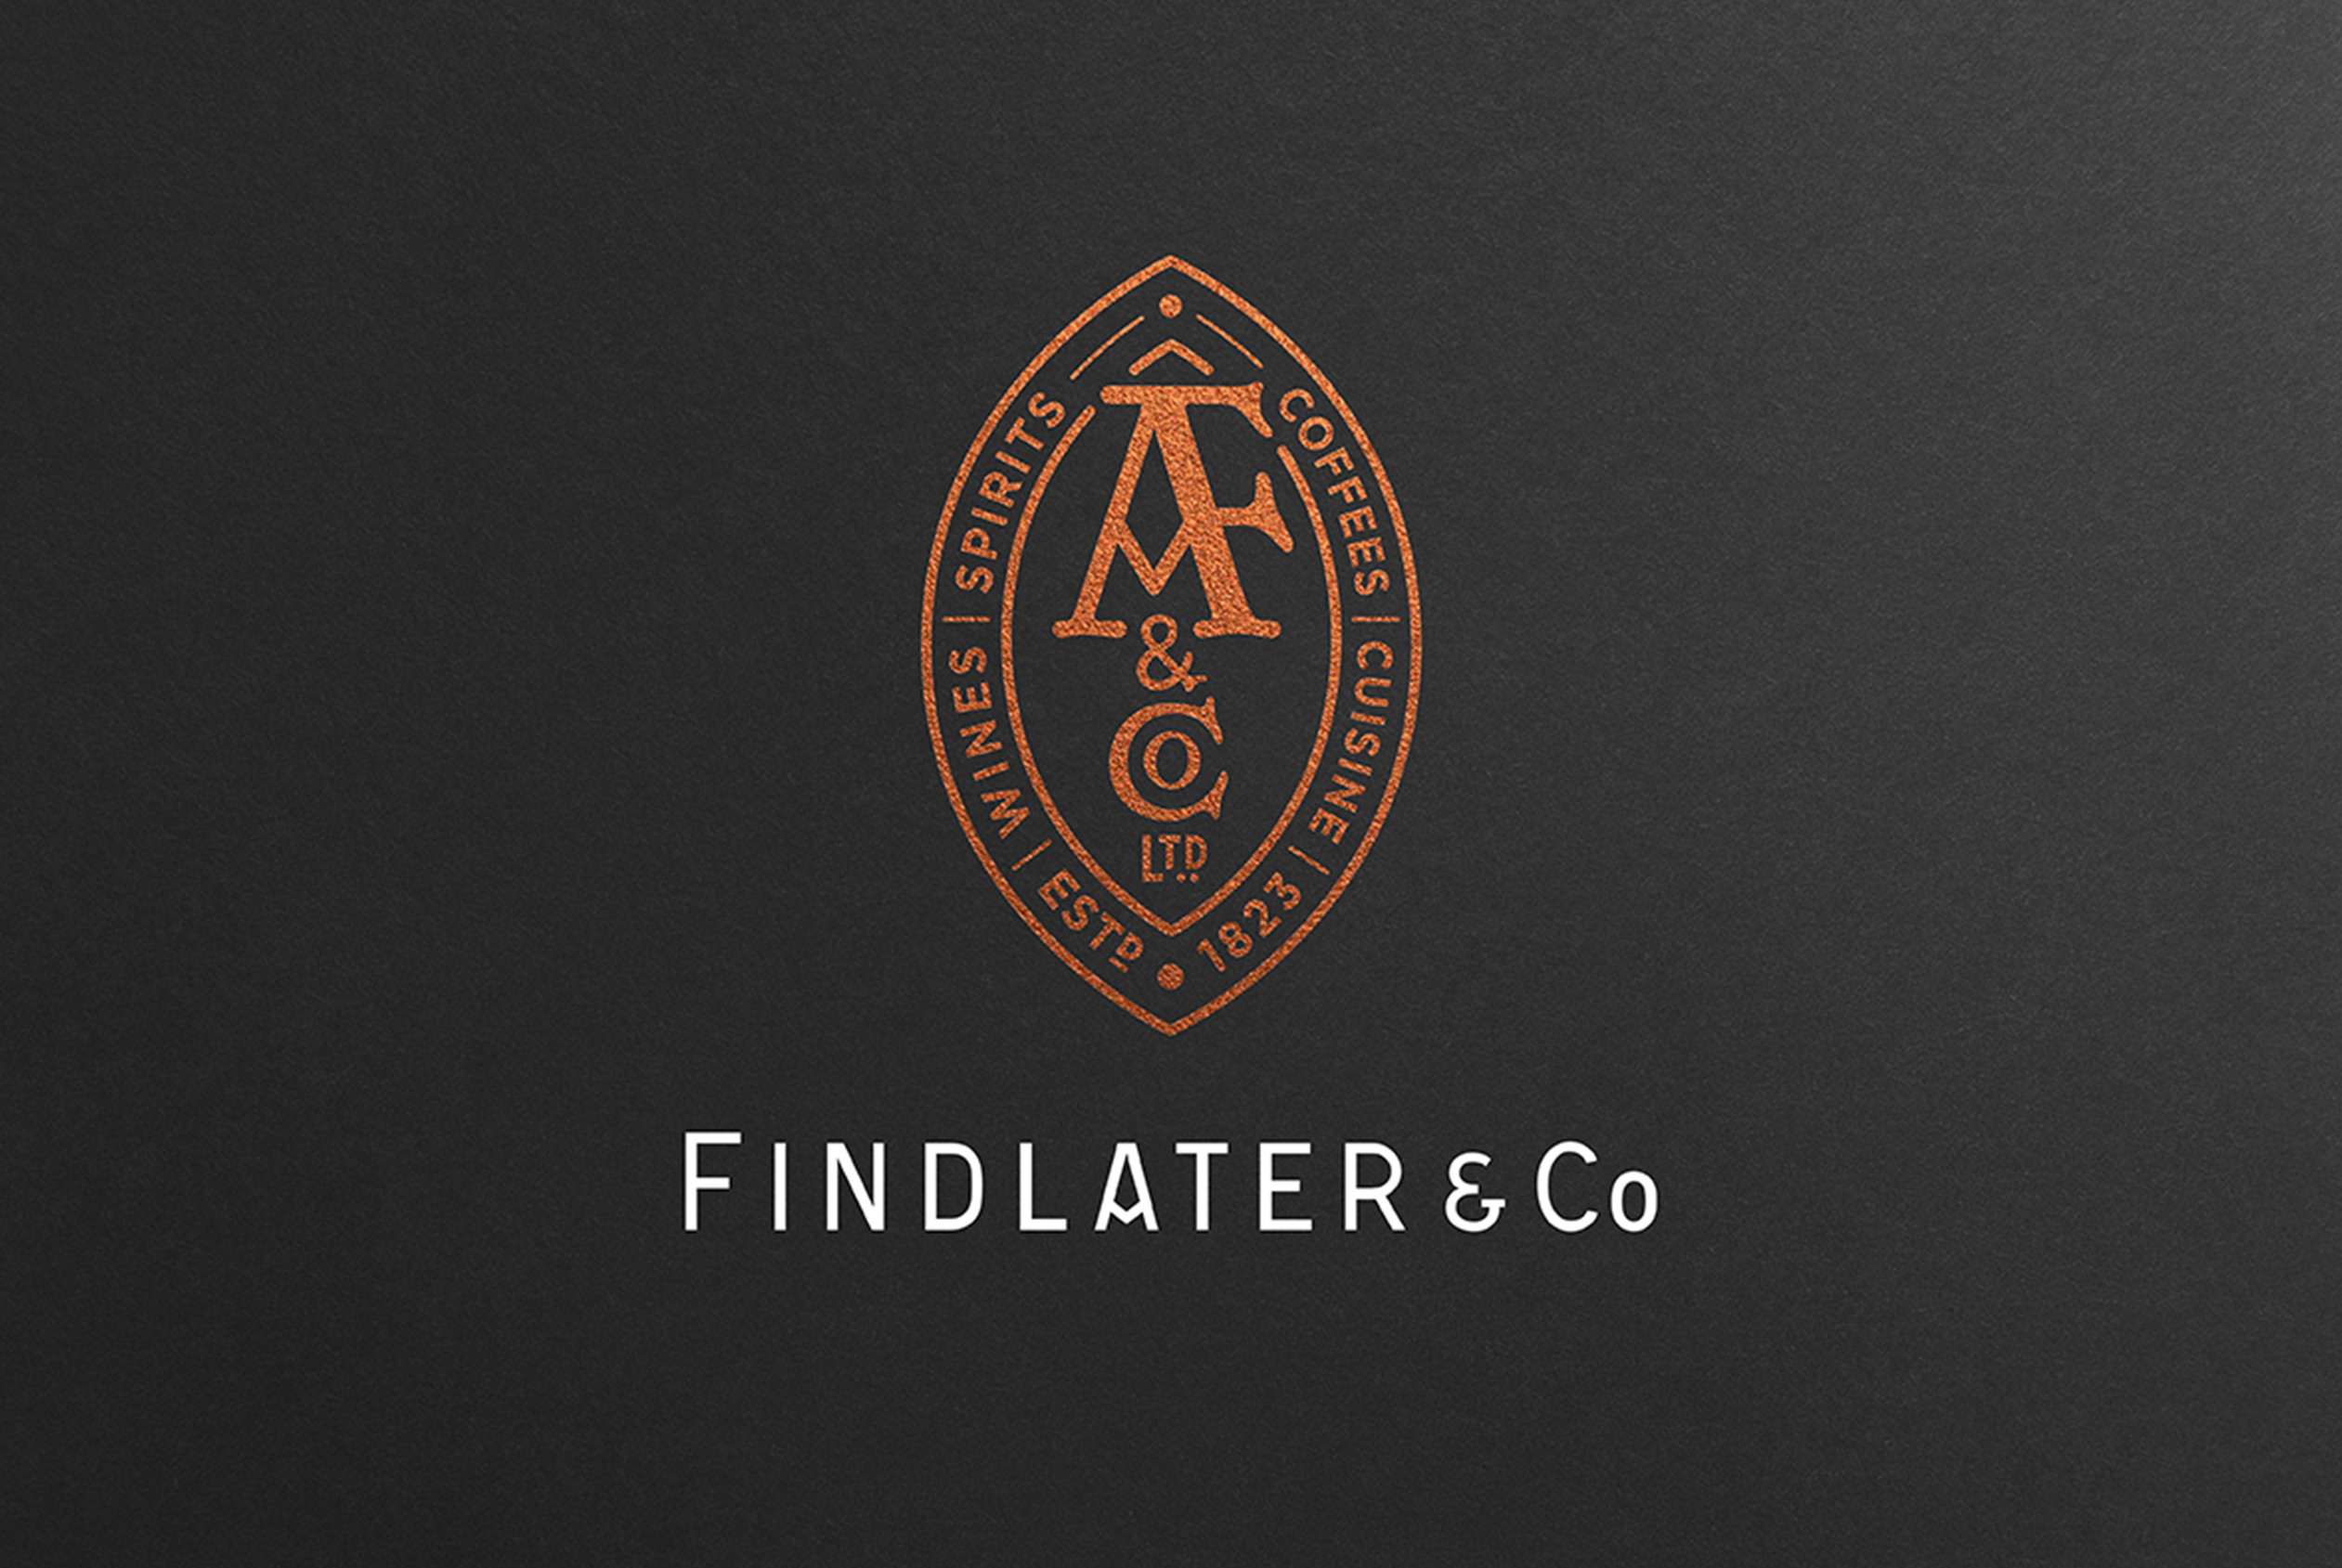 Cover image: Findlater & Co.